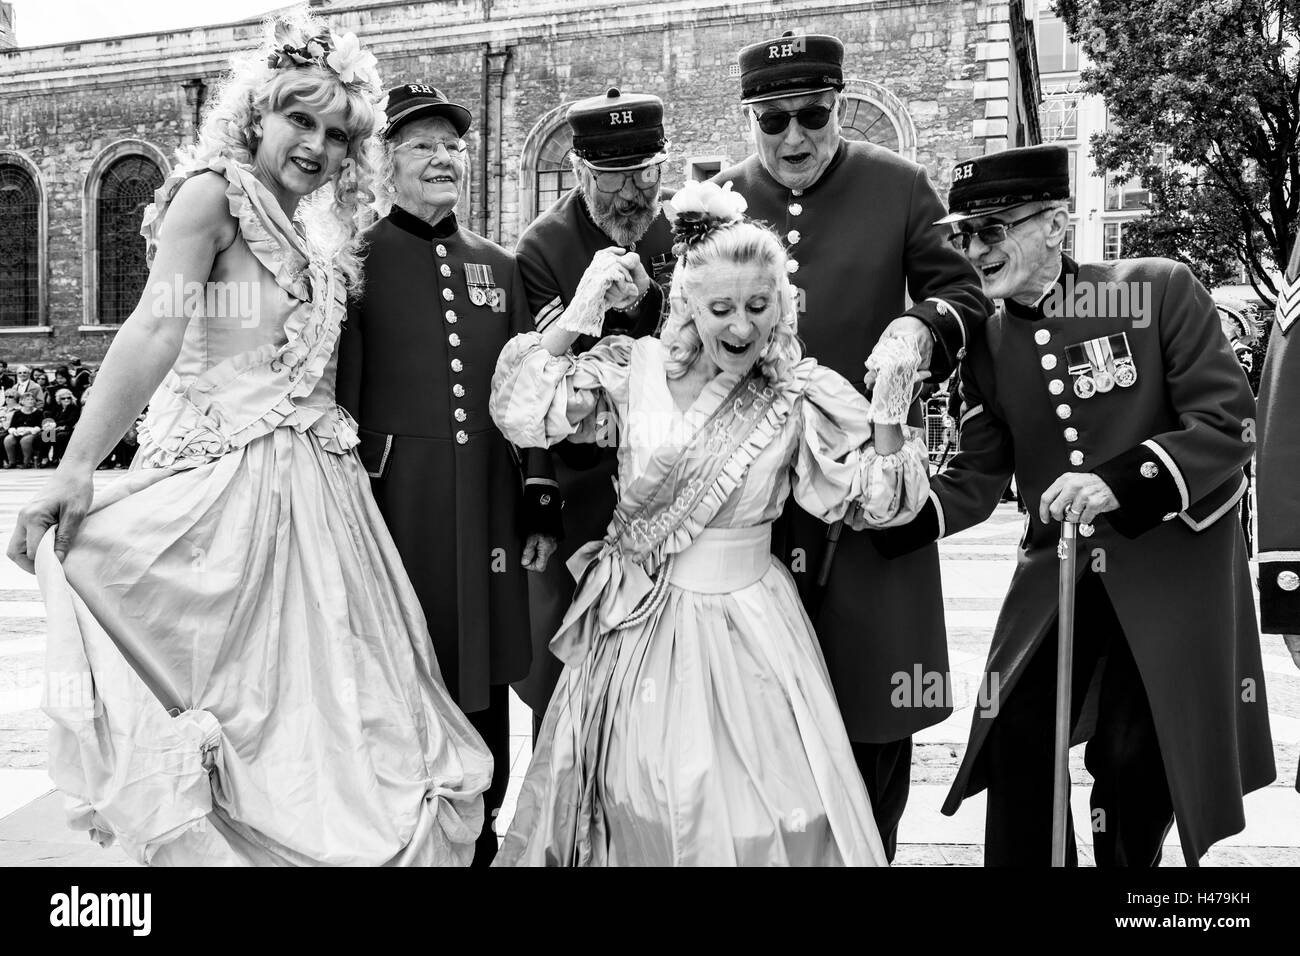 The Event Performer Donna Maria With A Group Of Chelsea Pensioners At The Pearly Kings and Queens' Harvest Festival, - Stock Image